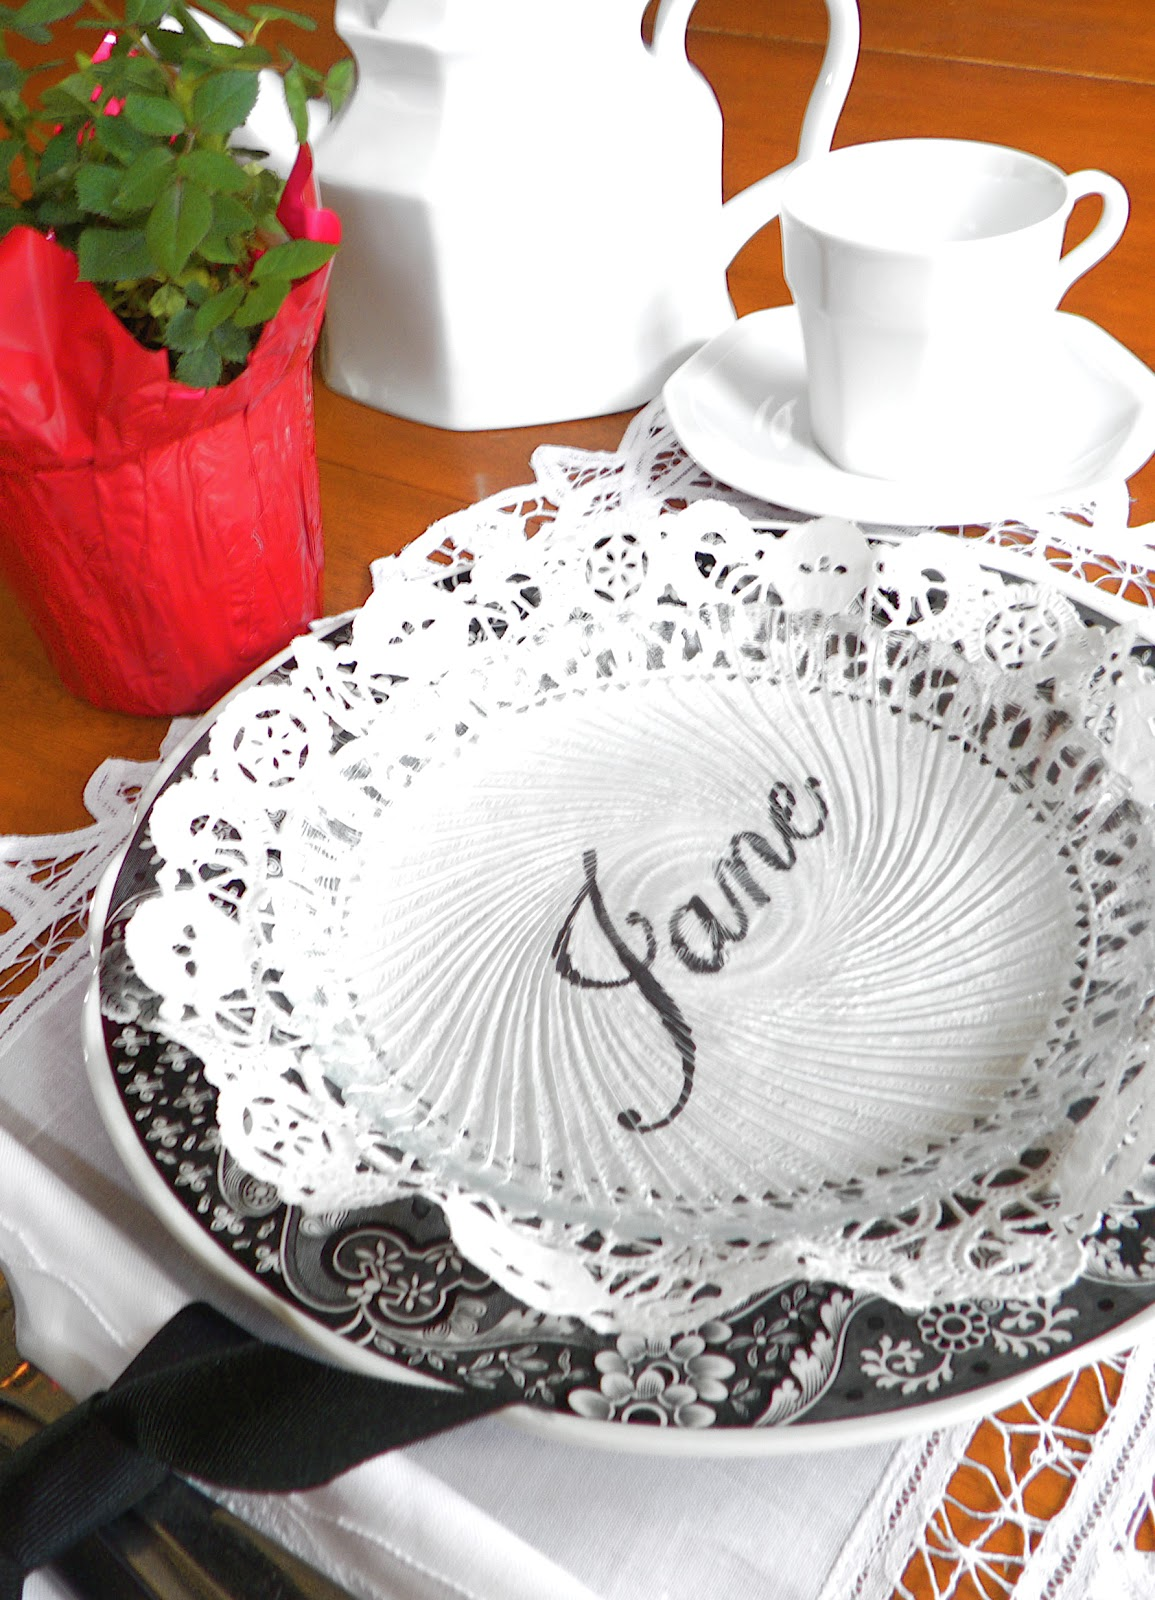 Tuesday February 21 2012  sc 1 st  Be Book Bound & Be Book Bound: Jane Austen Month Day 23: Place Cards Fit for Pemberley